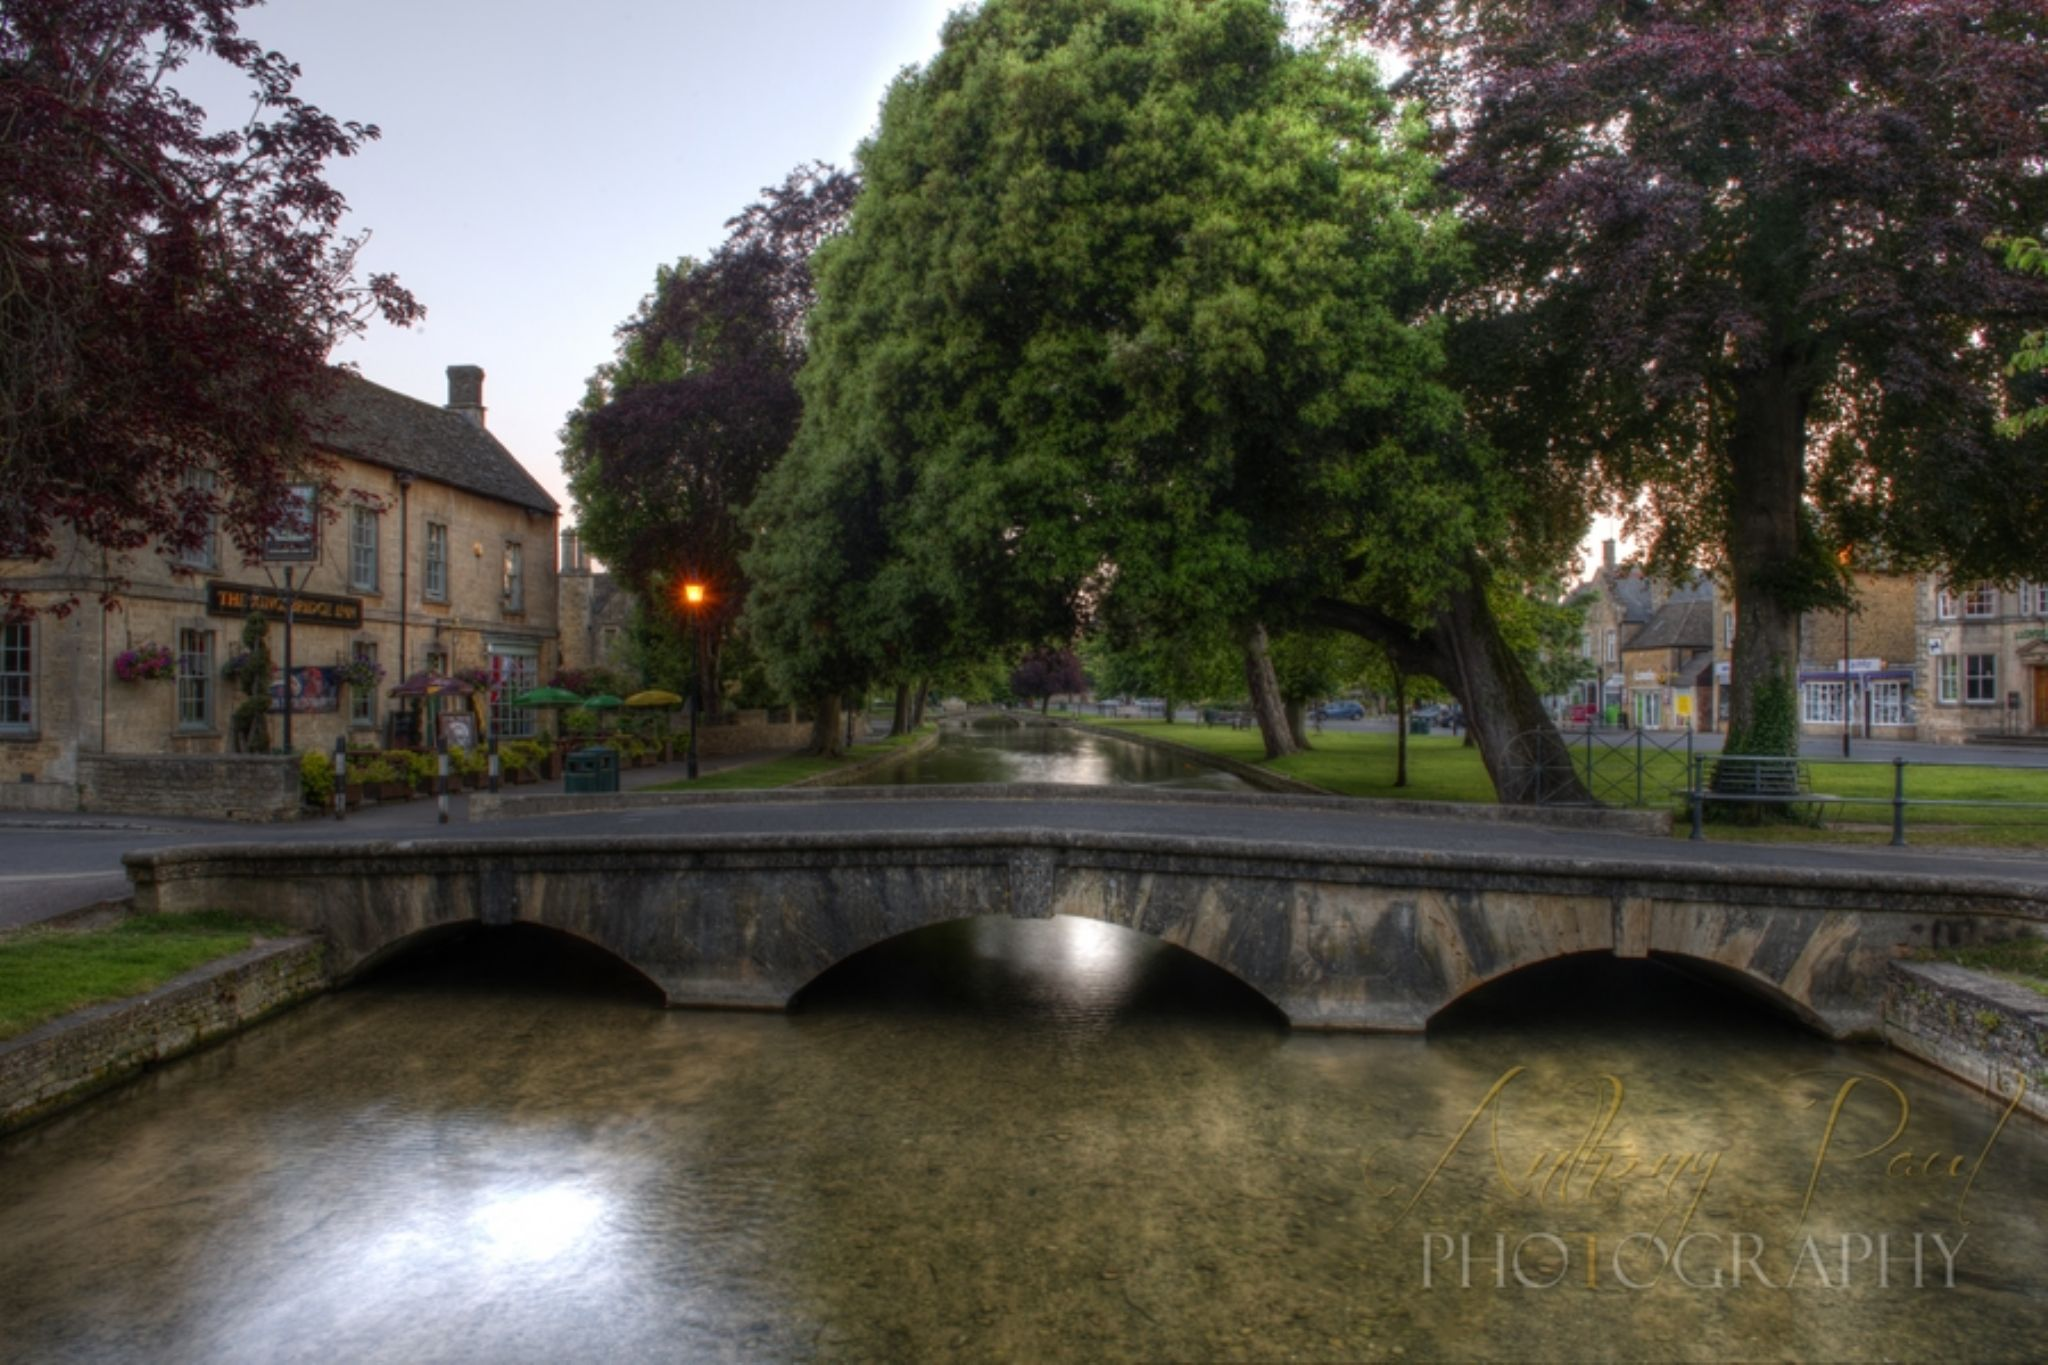 Bourton on the Water 210614-61_2_3 by Anthony Inwood